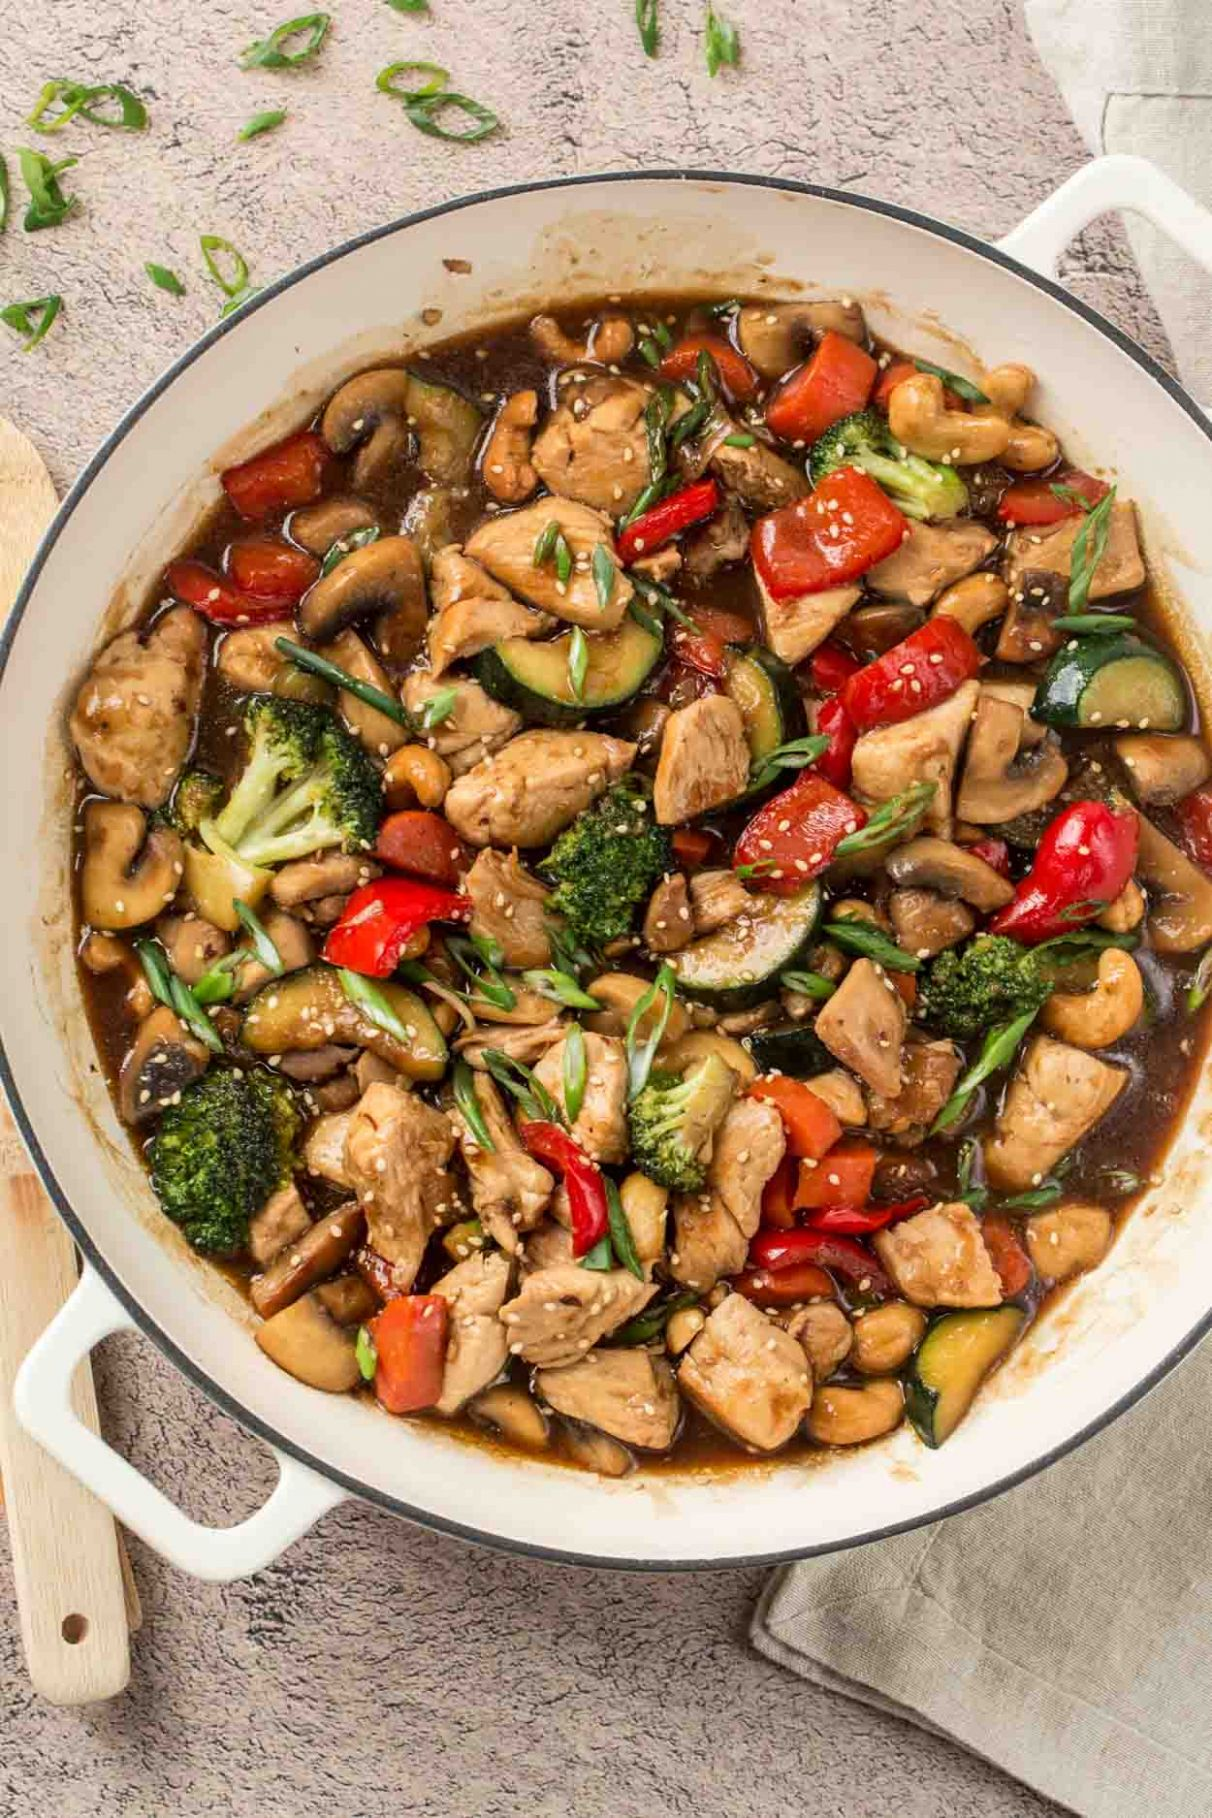 Easy Chicken Stir Fry Recipe - Recipes Chicken Breast Stir Fry